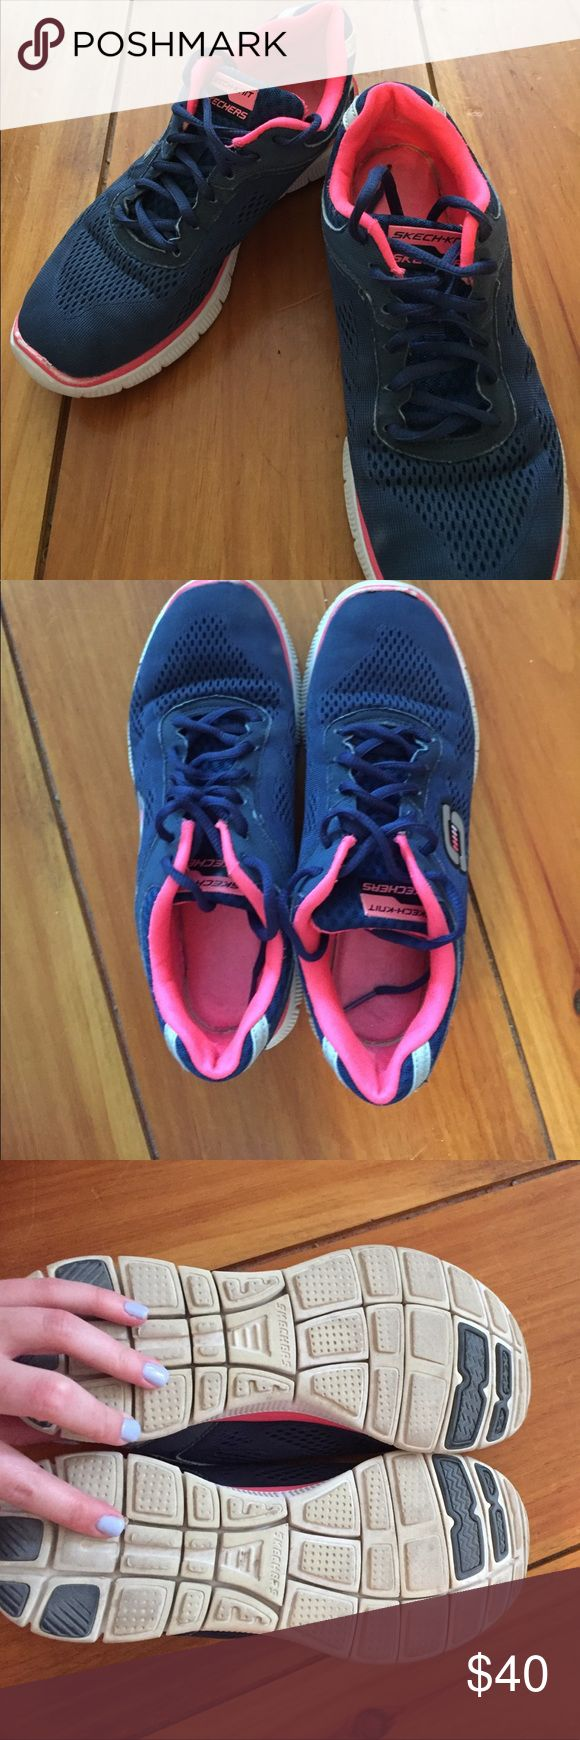 Skechers memory foam sneakers Great condition! Memory foam bottom is super comfortable and adaptable. Easy to clean, and super cute. Willing to accept reasonable offers but no trades. Nike Shoes Athletic Shoes